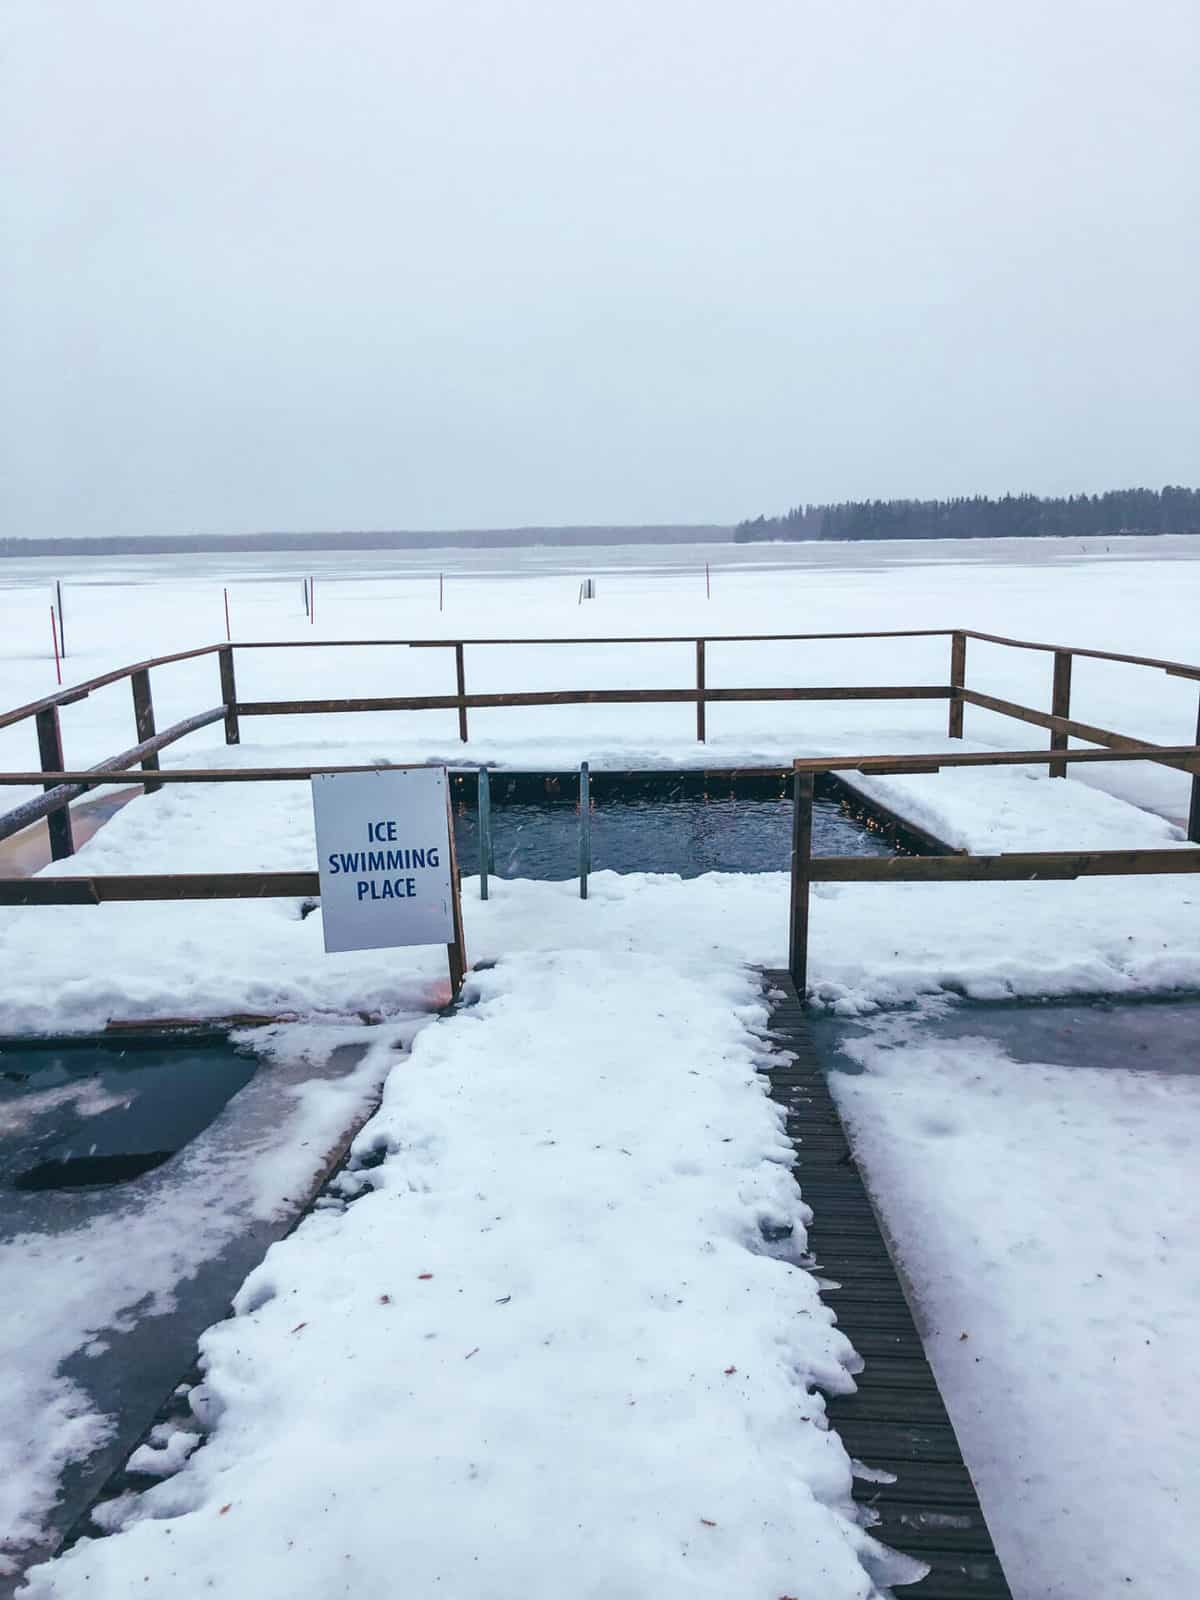 An ice pool on the side of a frozen lake surrounded by snow